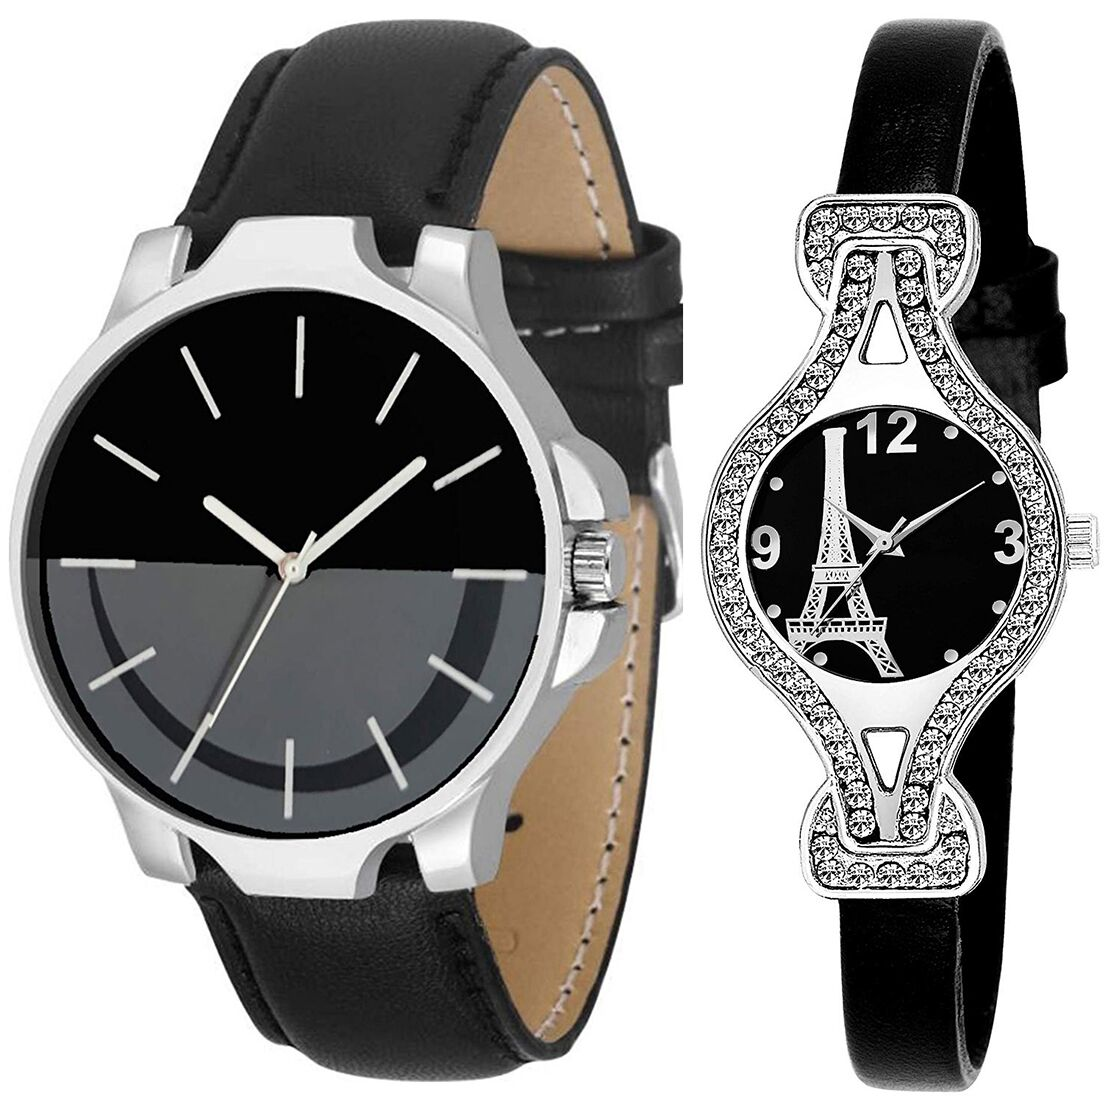 SENJARYA TIMES Black Dial Fancy Couple Watch For New Lovers DR103